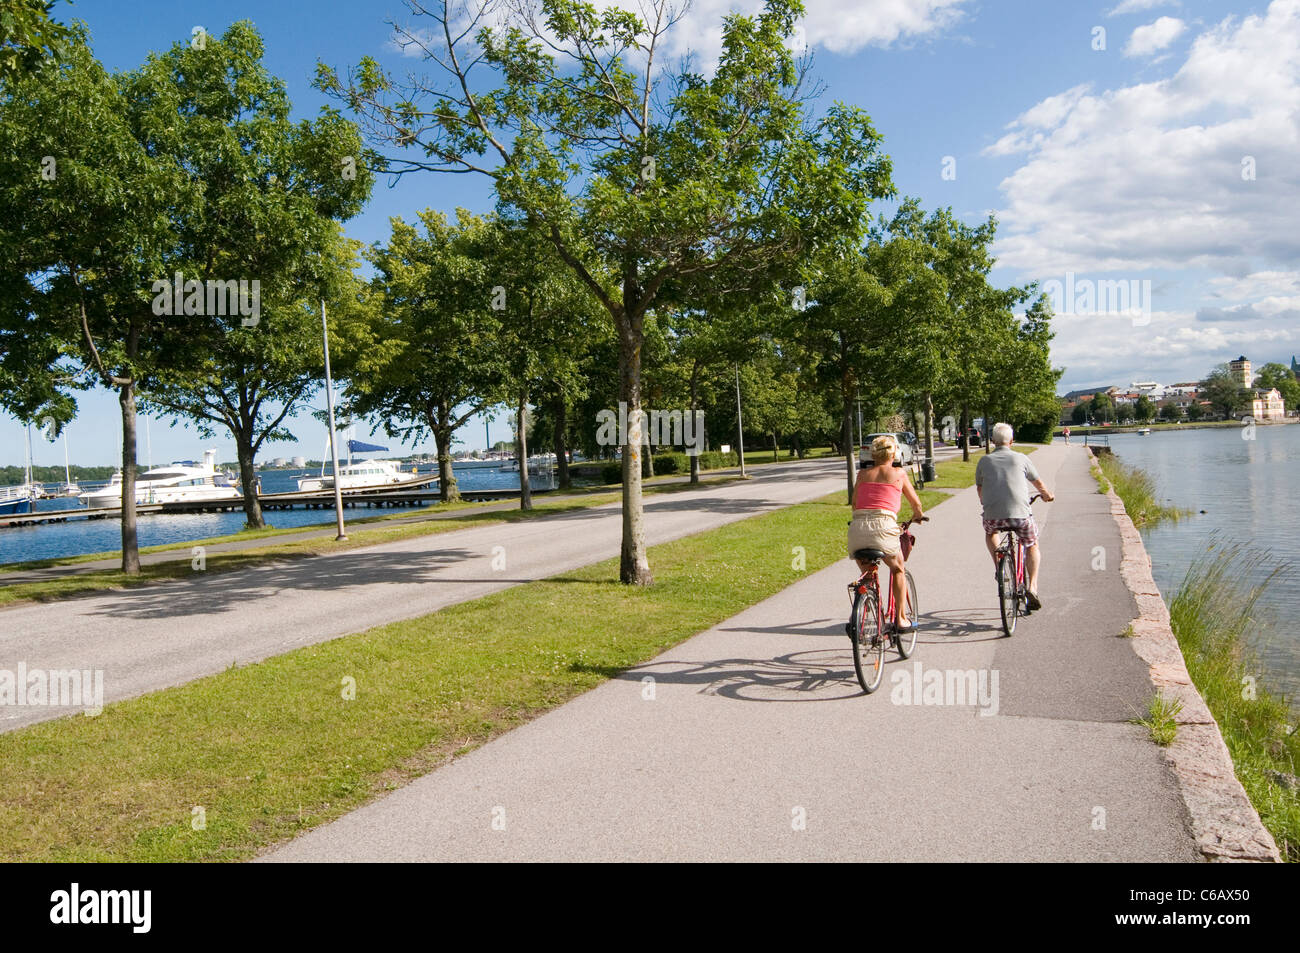 Västervik sweden swedish town cycle path paths cyclepath cyclepaths bike cycle cycling ride riders path paths - Stock Image